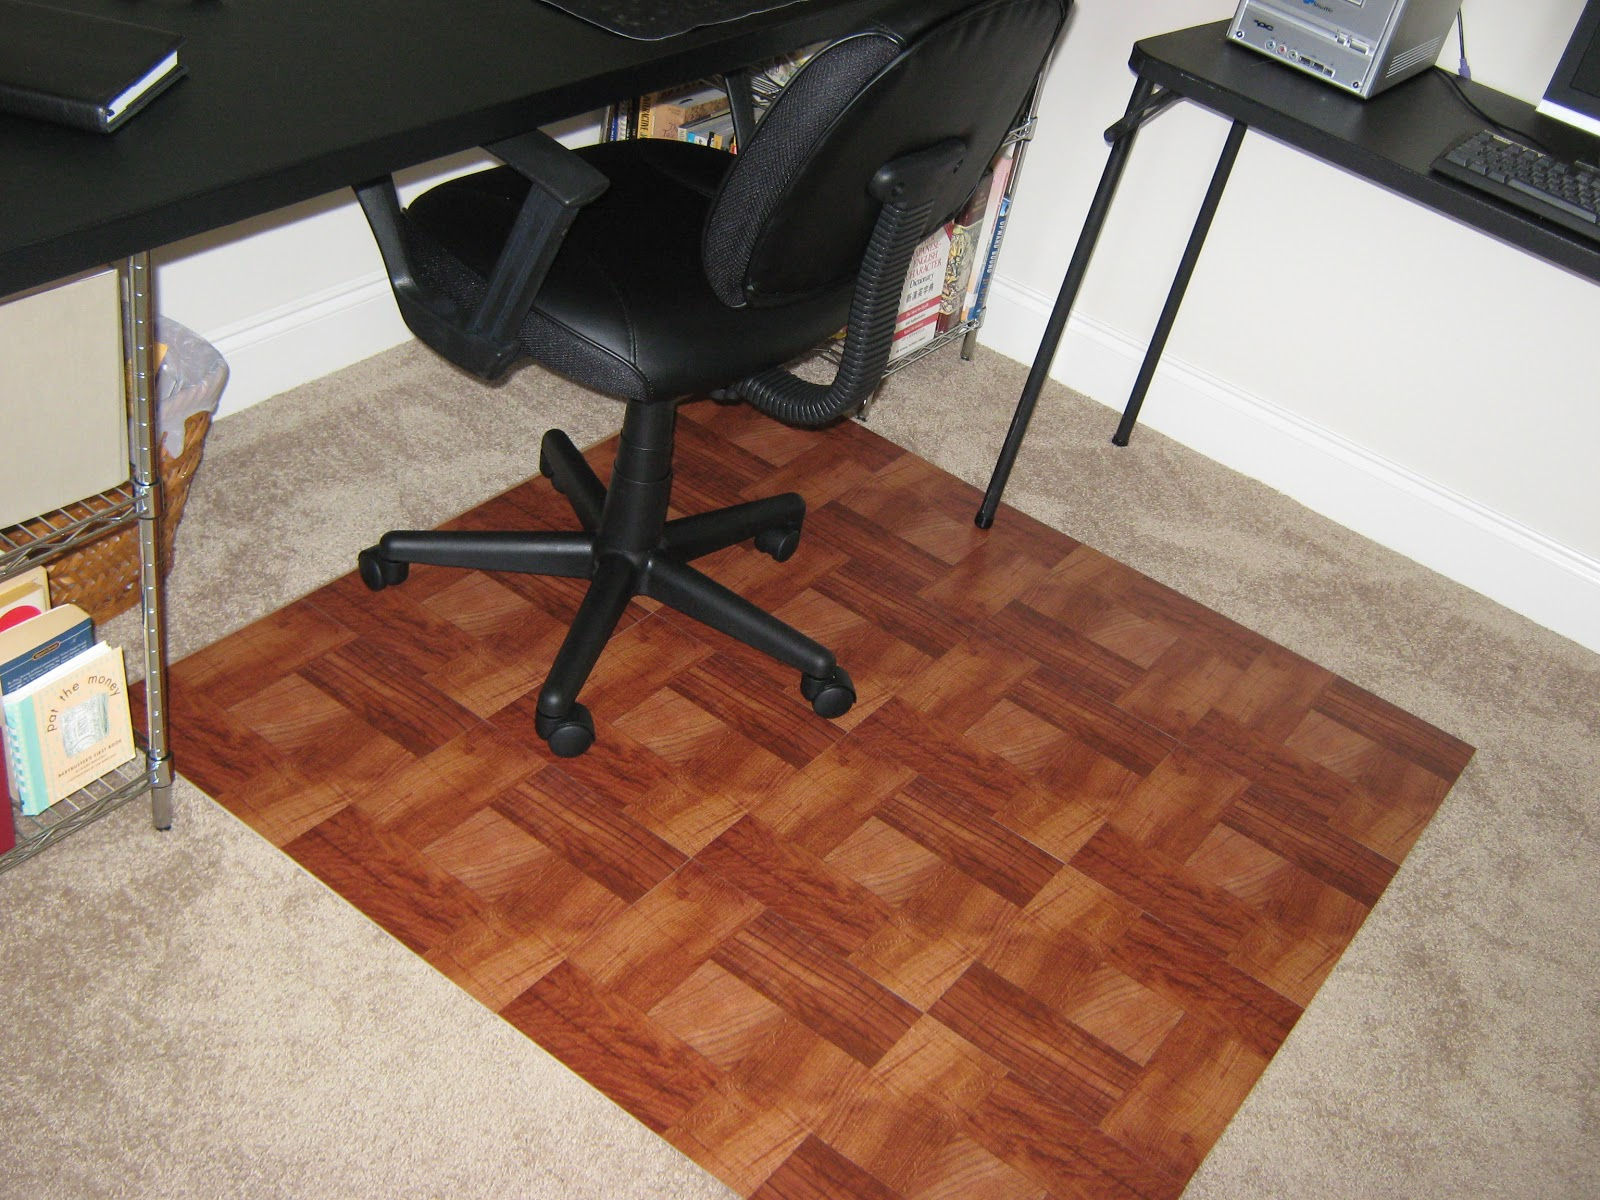 office floor caster mats chair mat diy id replacement